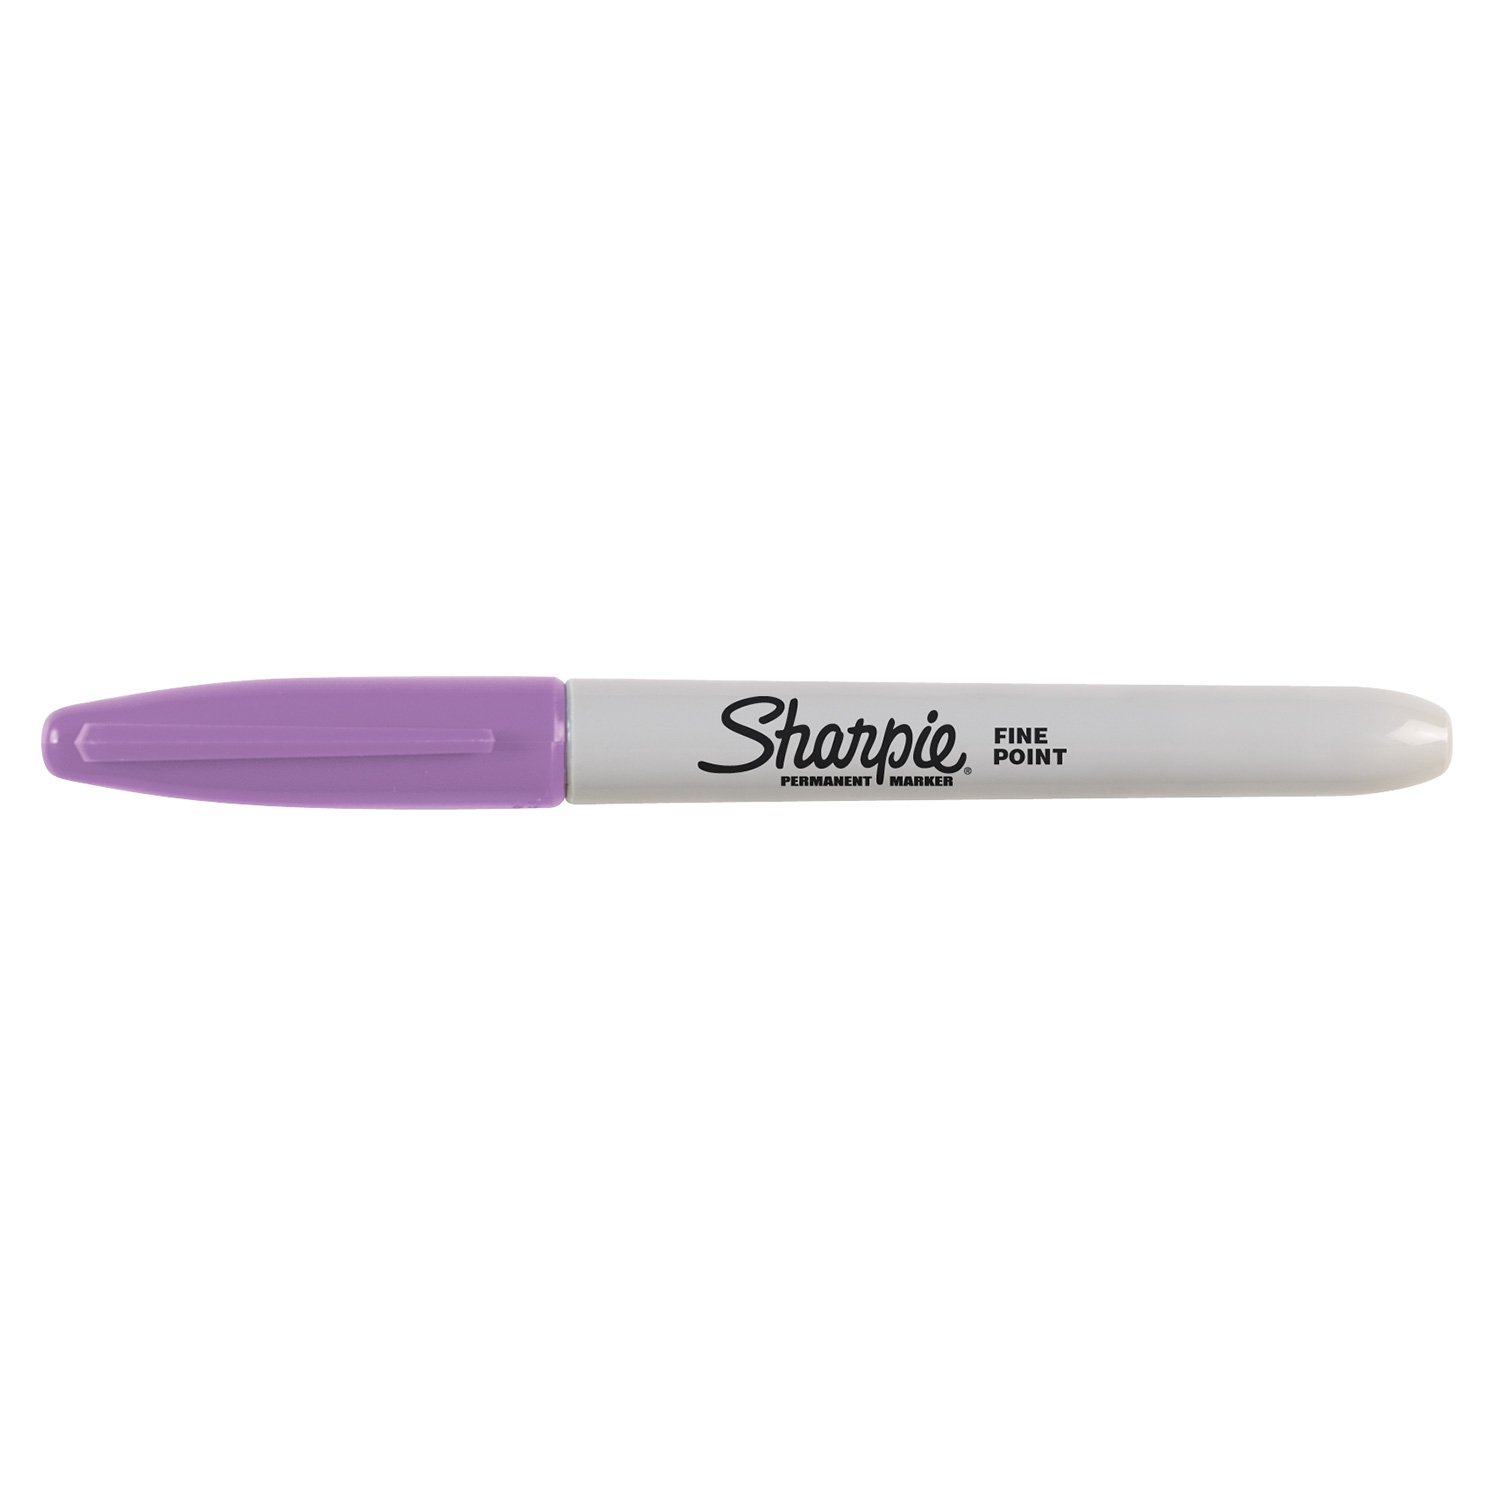 Sharpie marqueurs permanents pointe fine Box of 12 Red